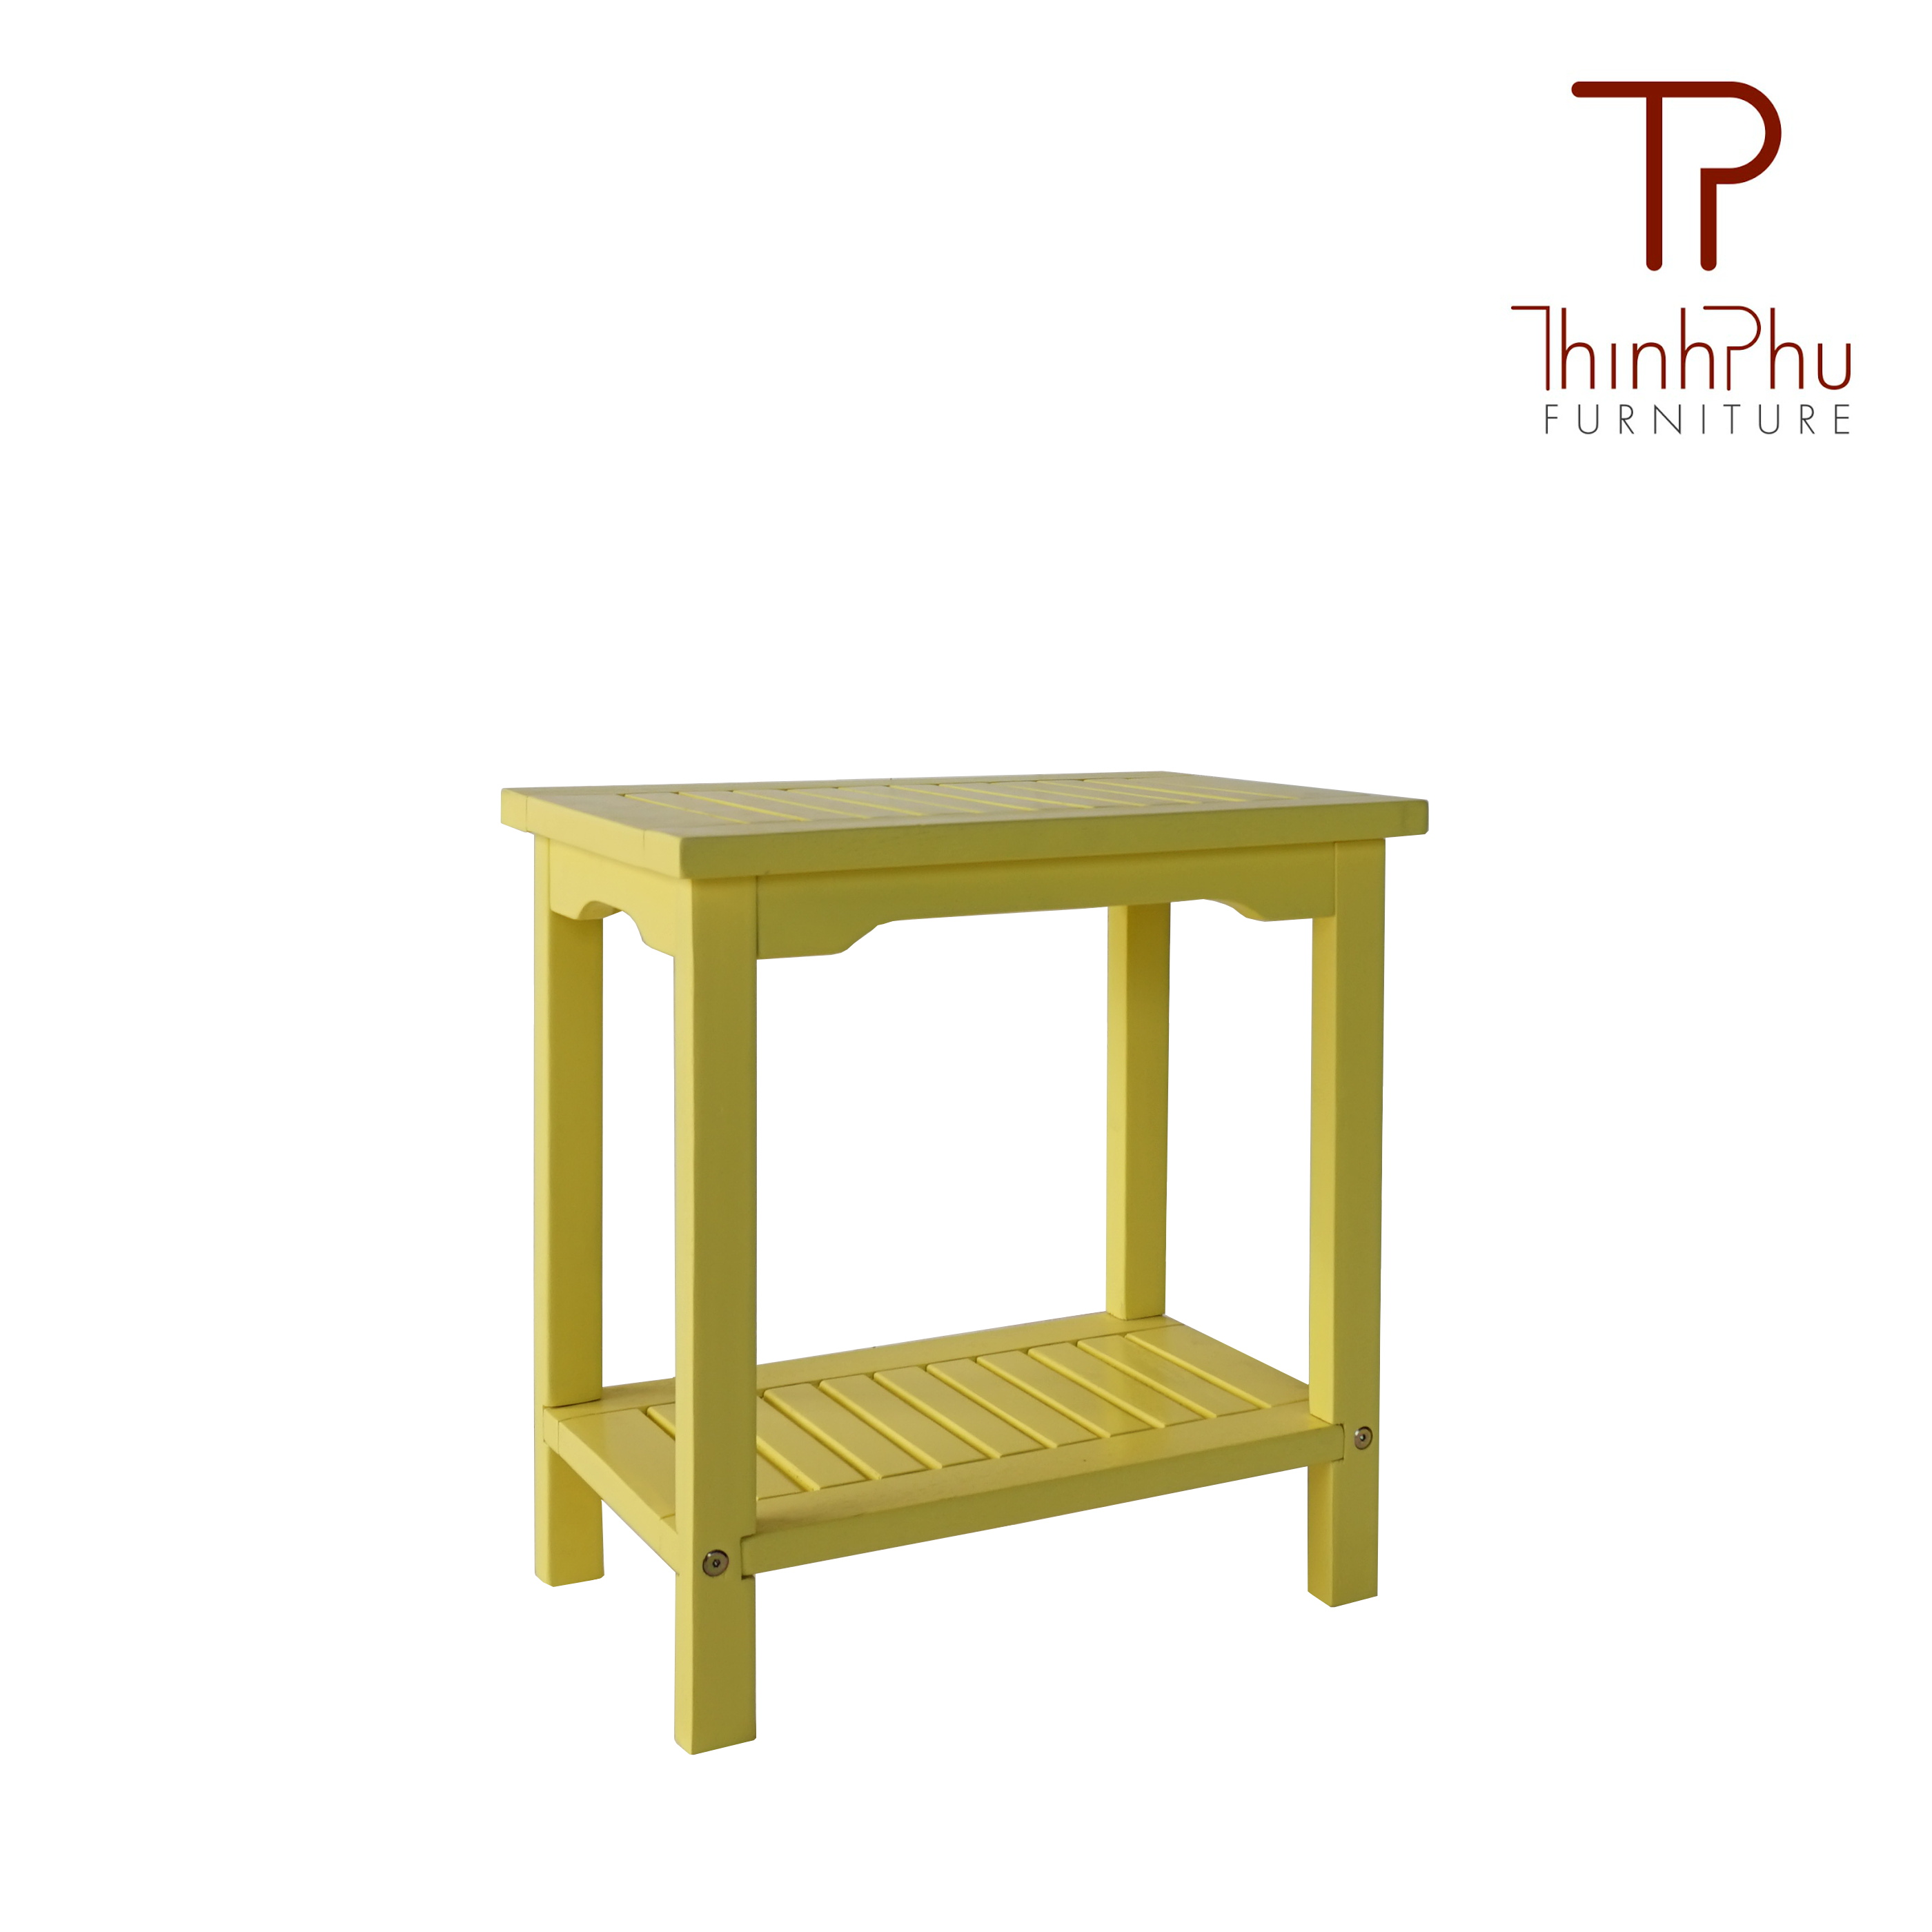 SIDE TABLE TPSI 08 | THINH PHU FURNITURE